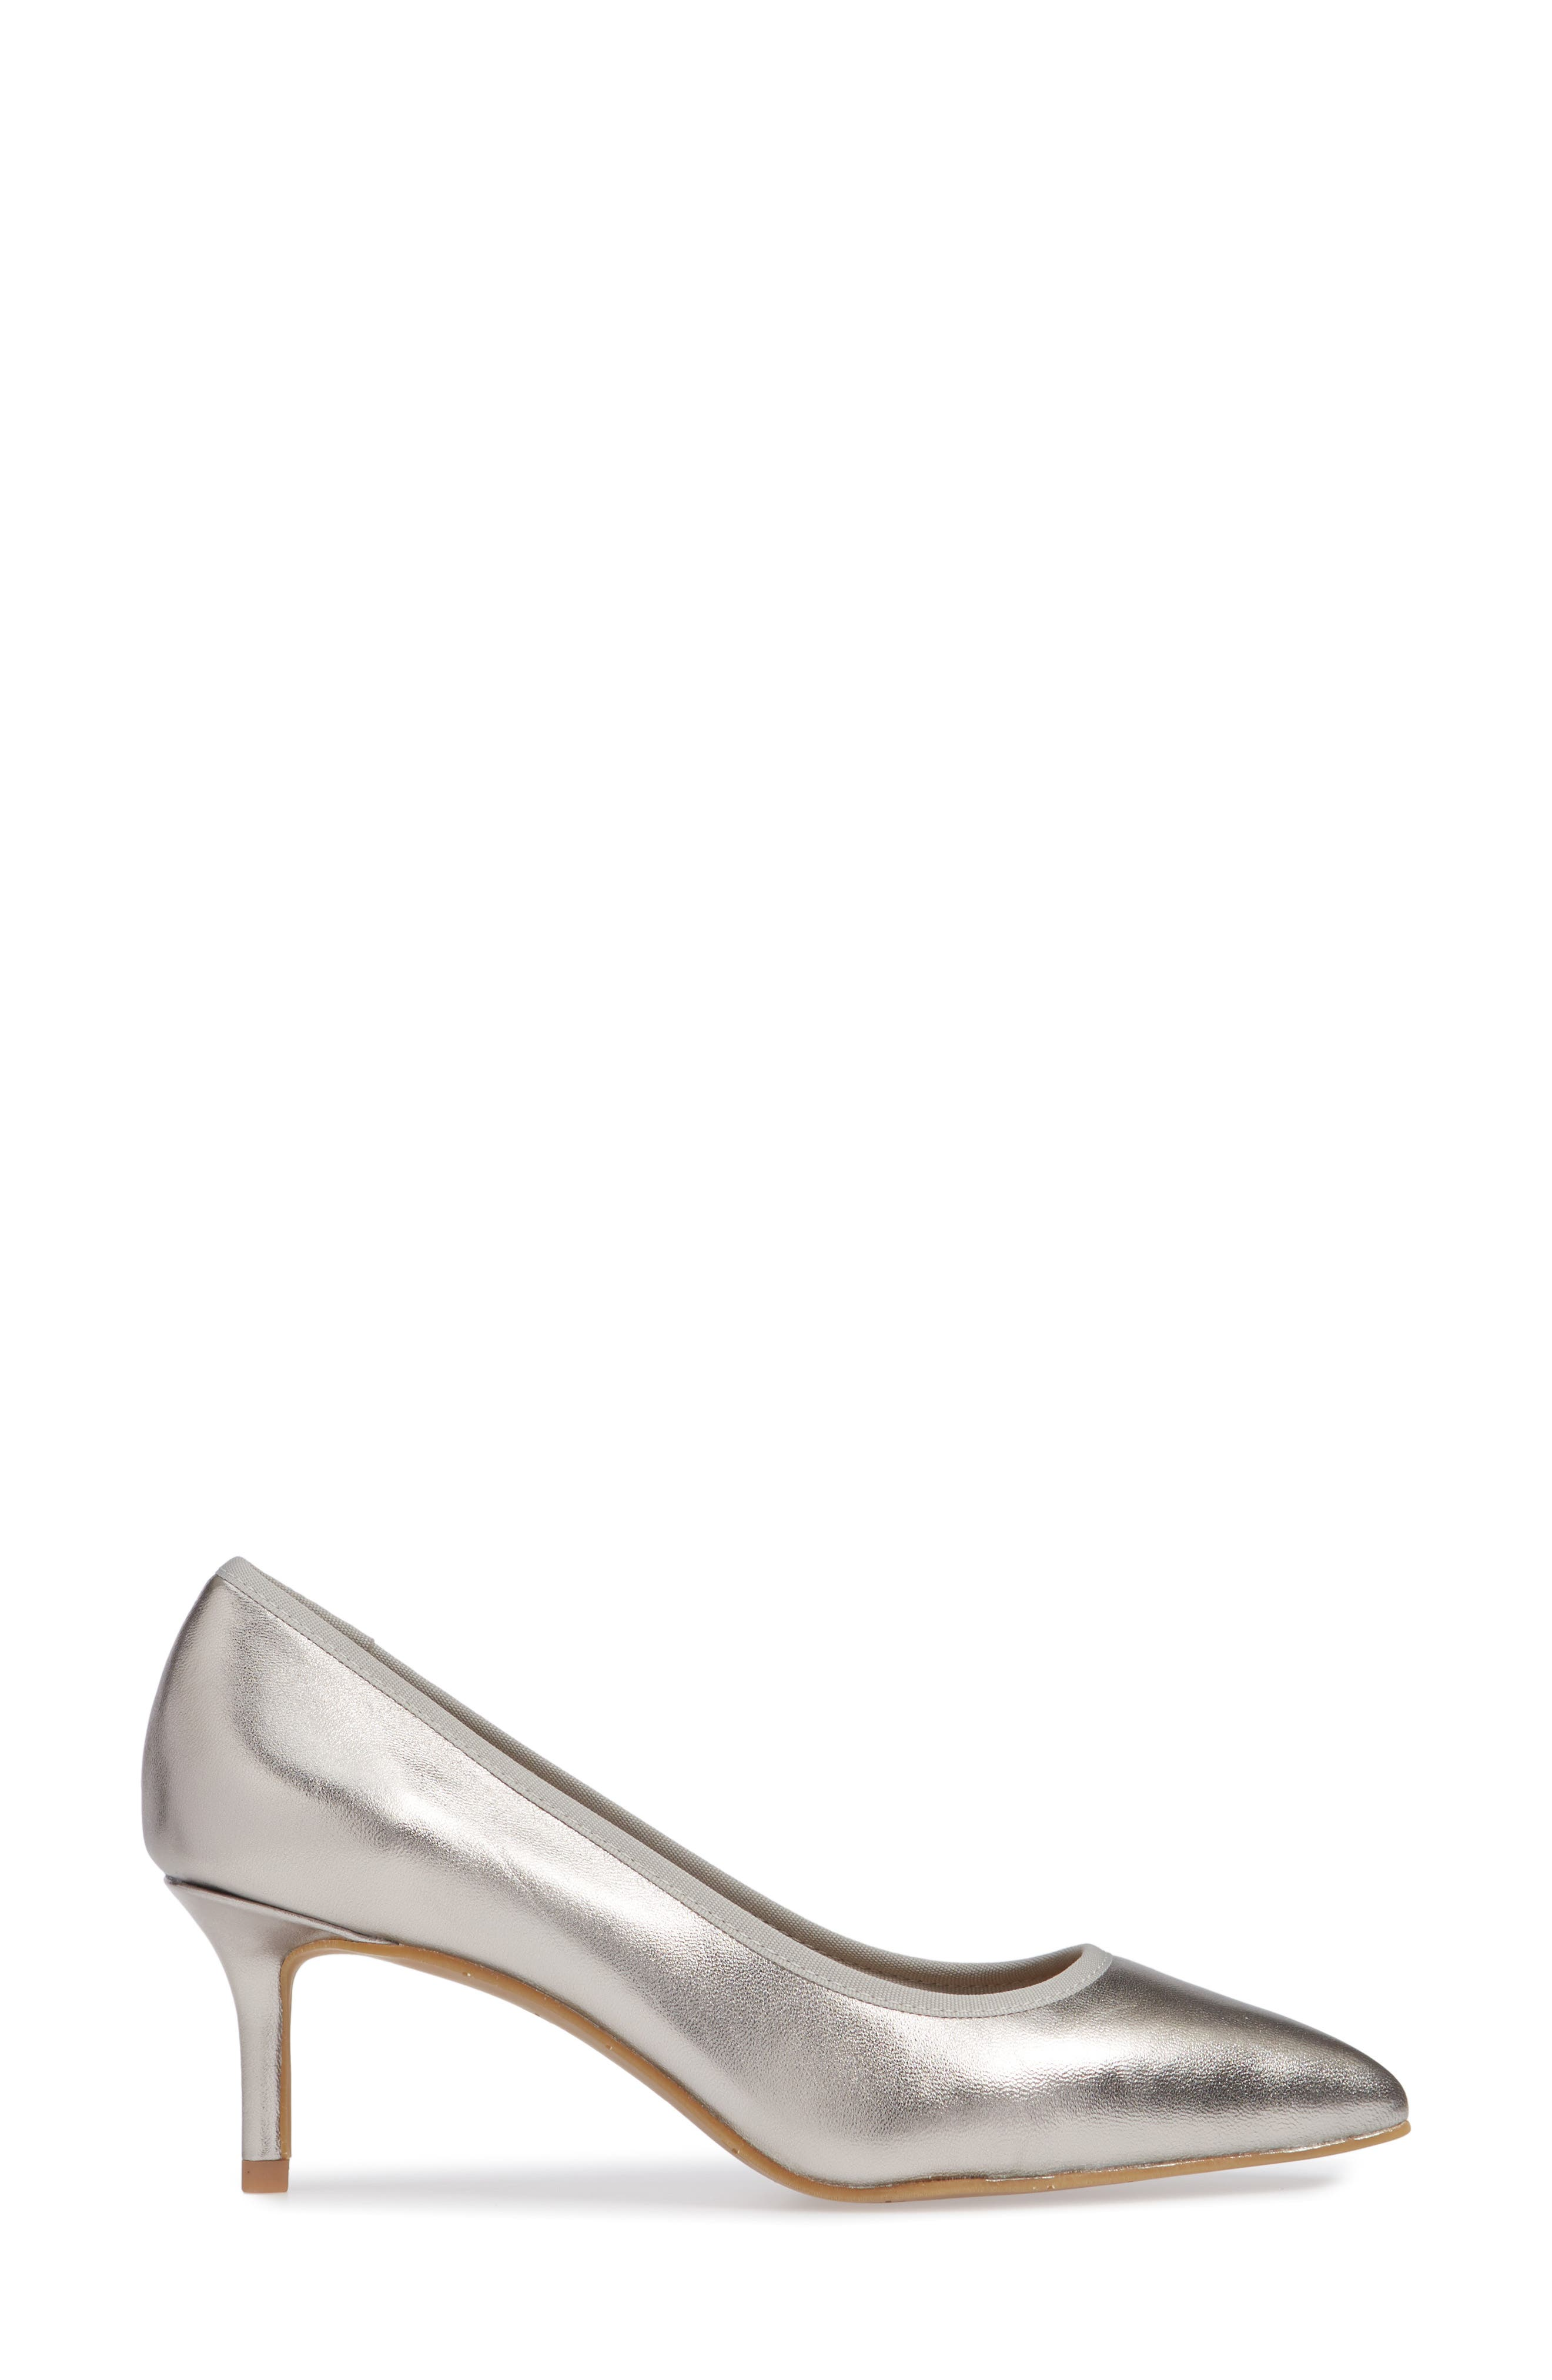 NIC + ZOE Cora Pointy Toe Pump,                             Alternate thumbnail 3, color,                             PEWTER LEATHER